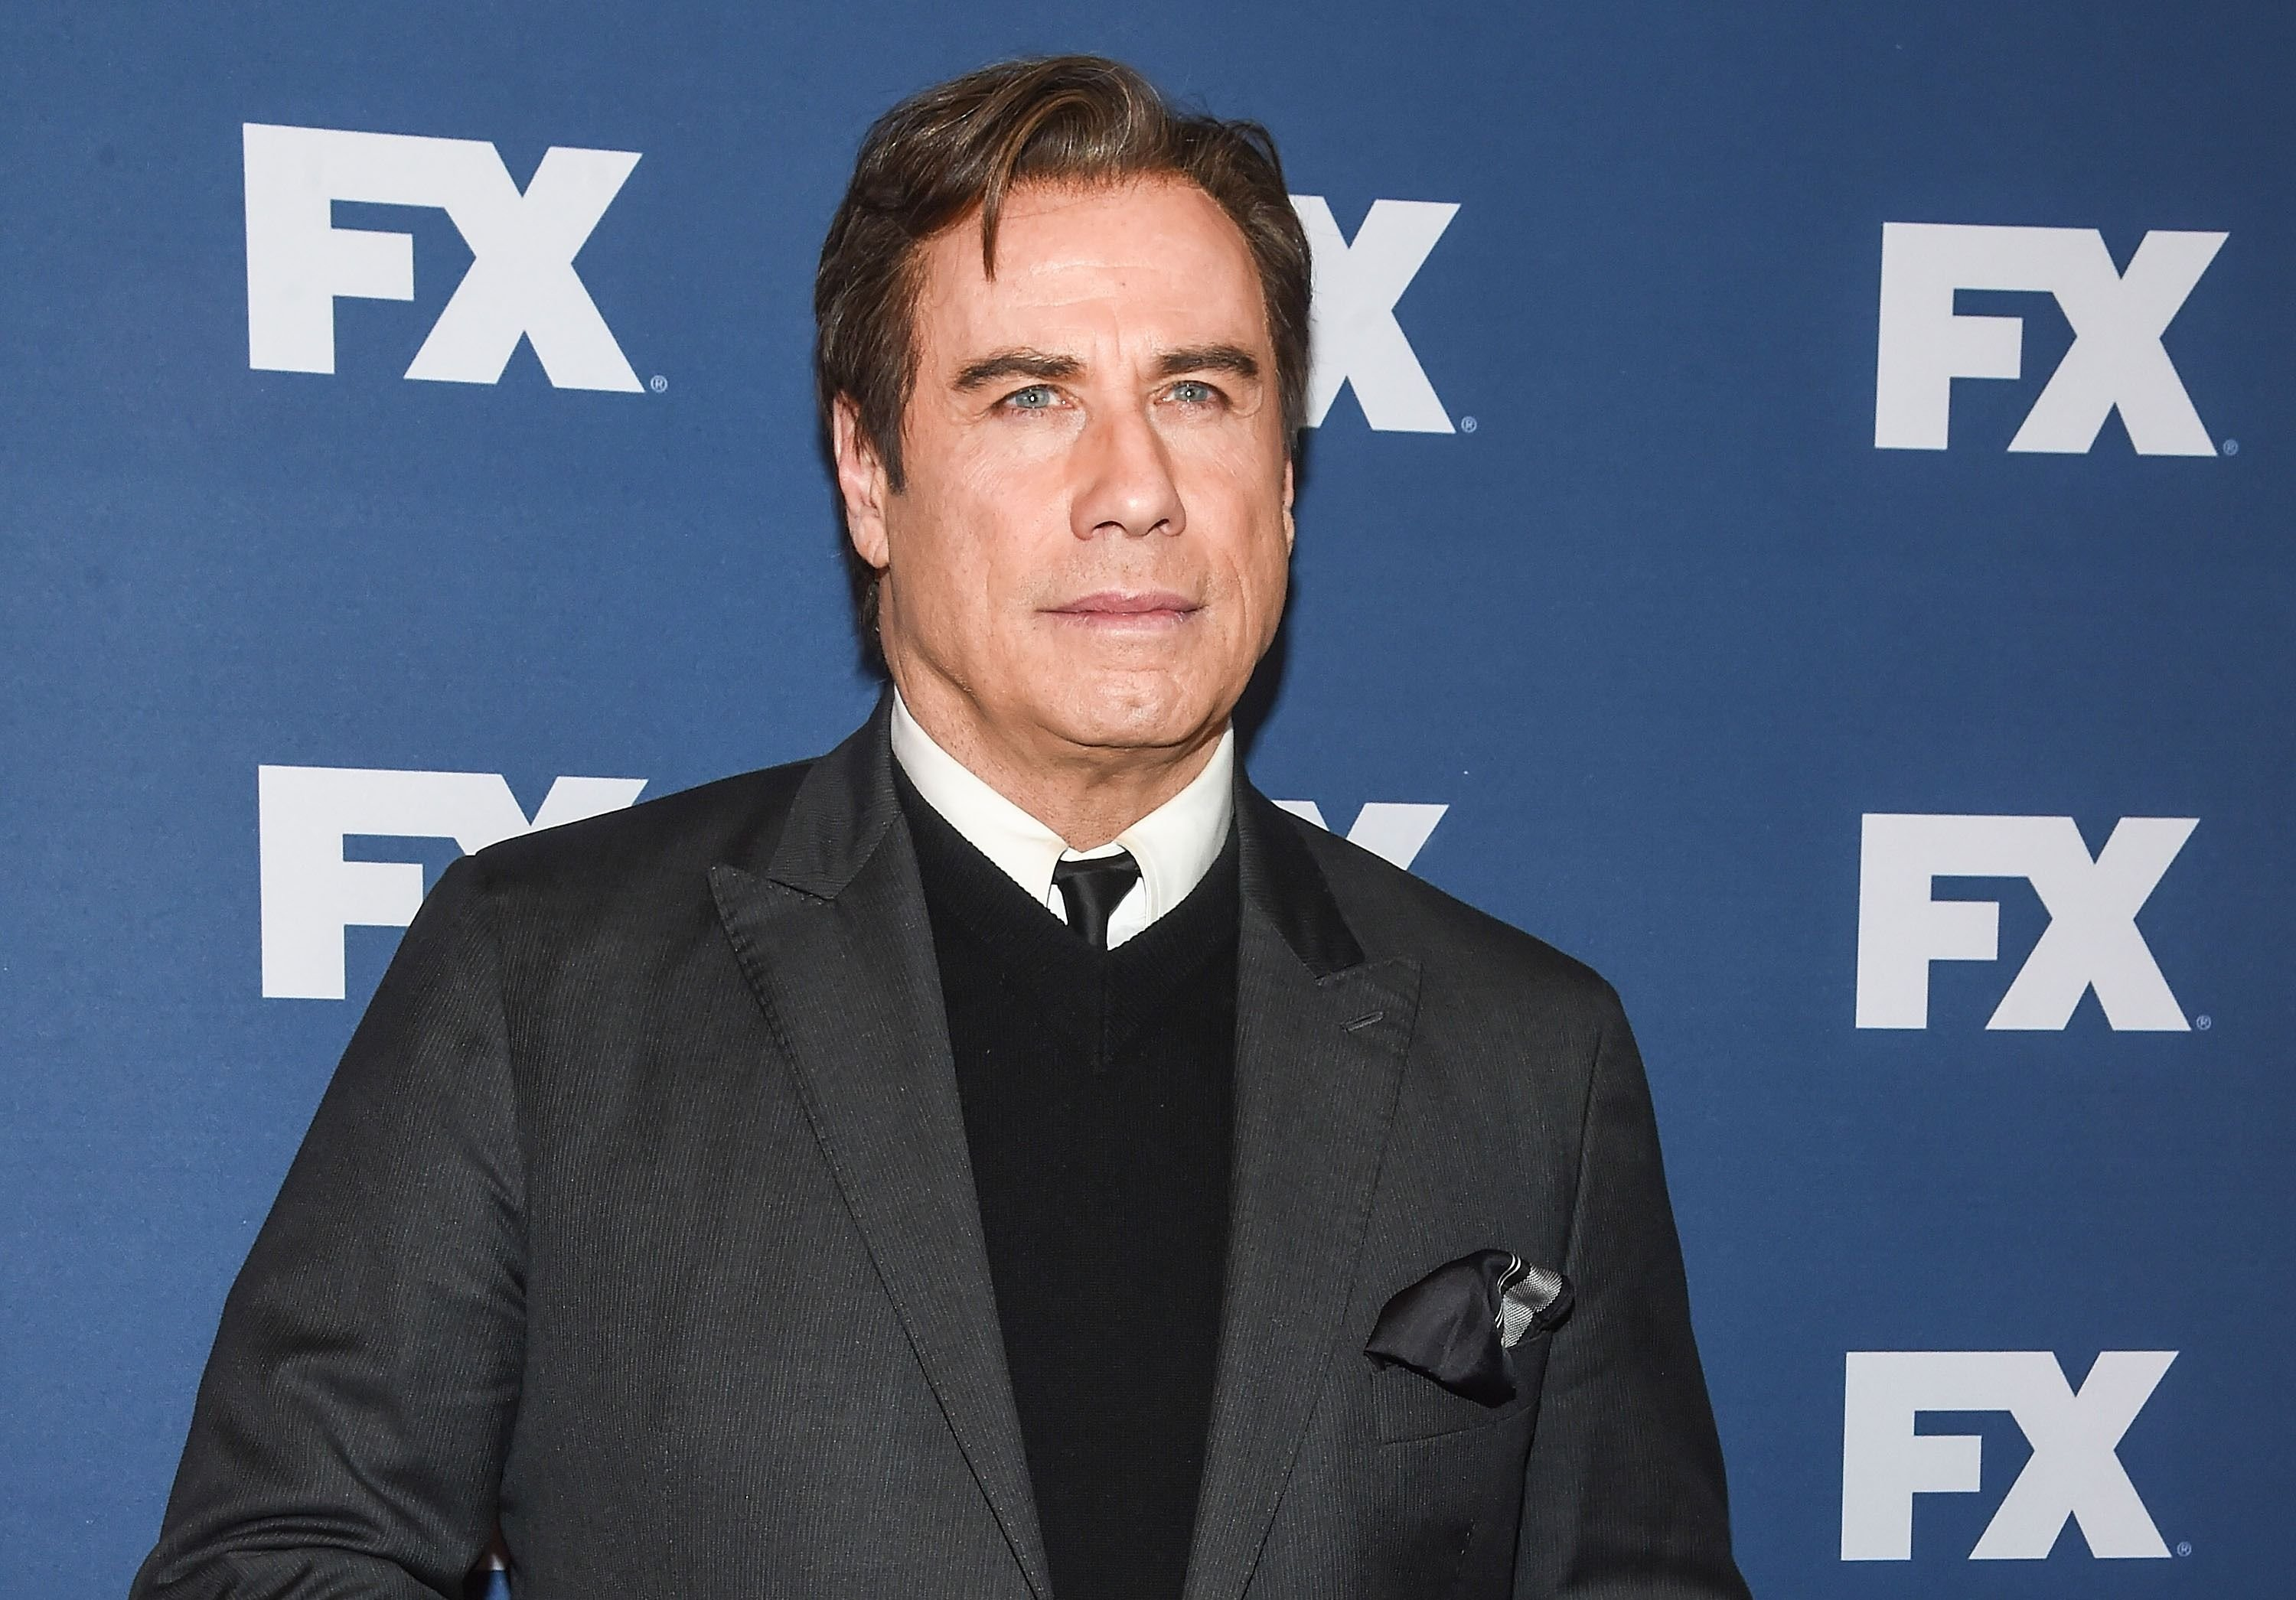 """John Travolta attheUpfront Screening of """"The People v. O.J. Simpson: American Crime Story"""" on March 30, 2016, in New York City 